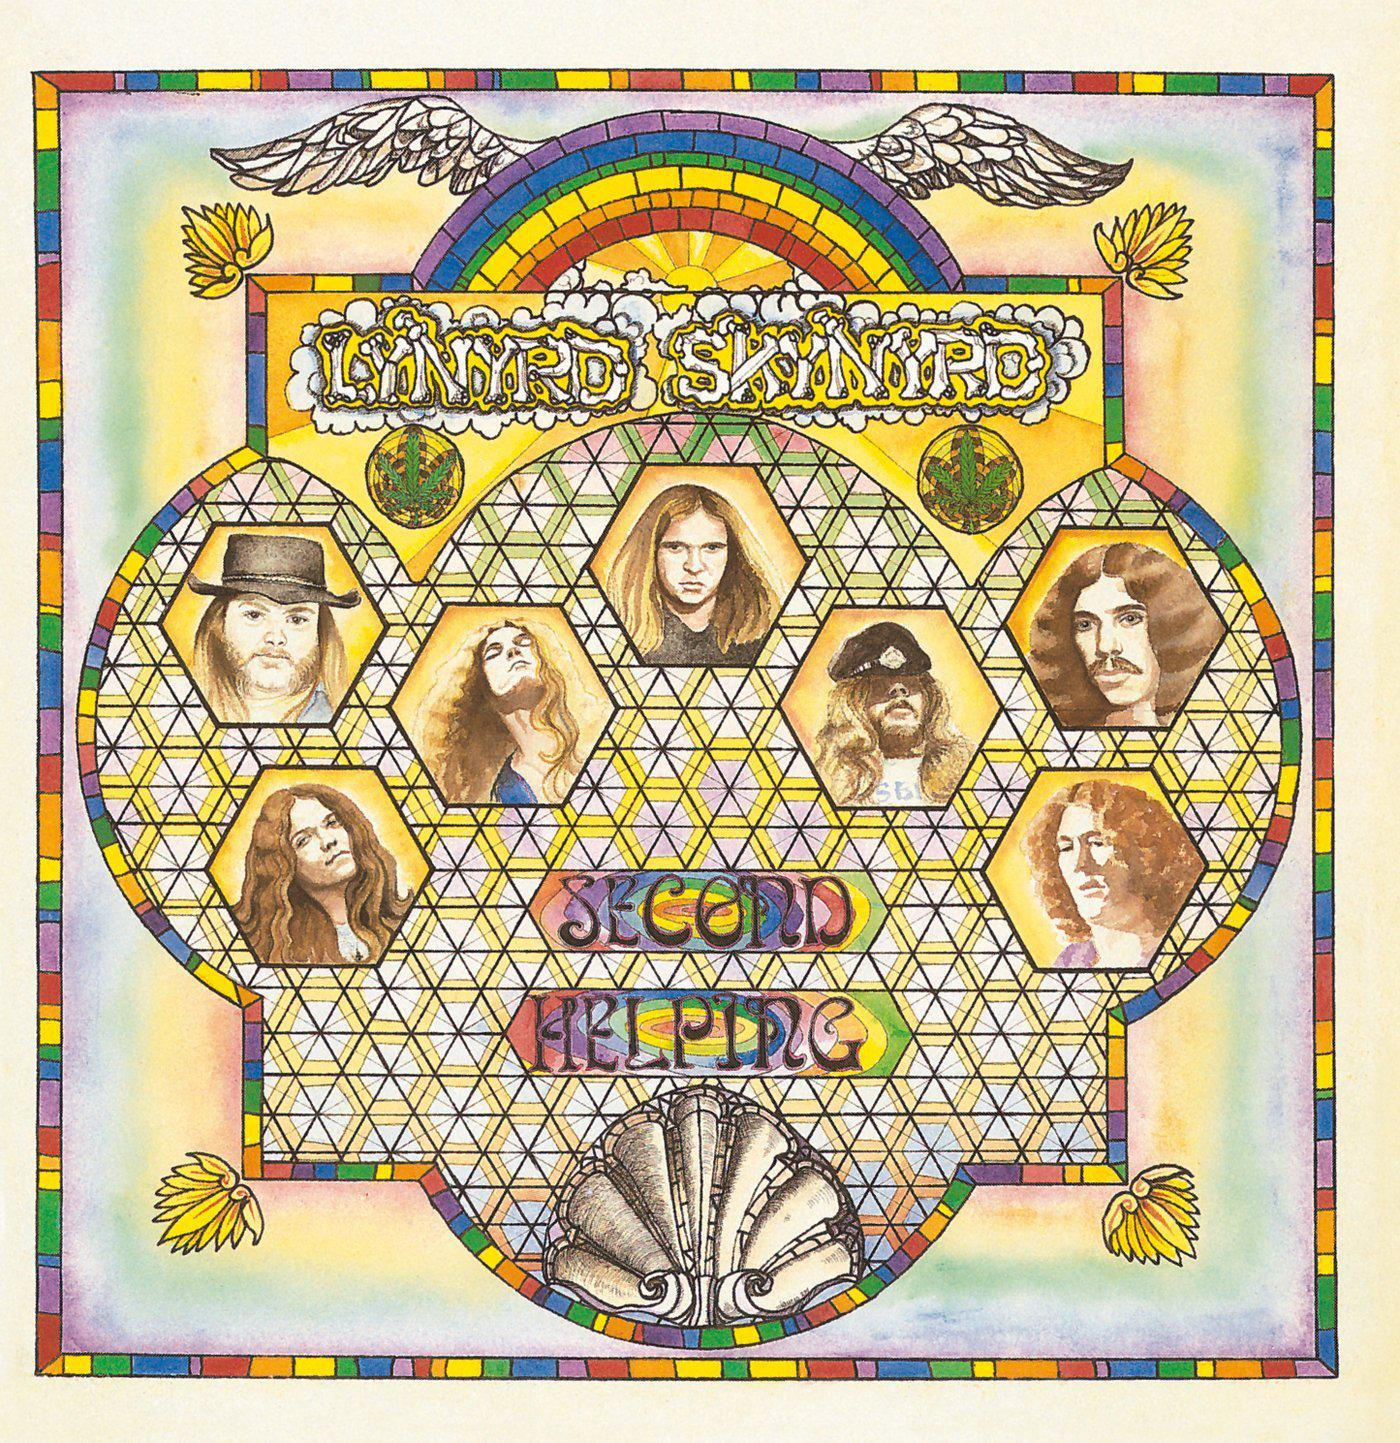 Second Helping-Lynyrd Skynyrd